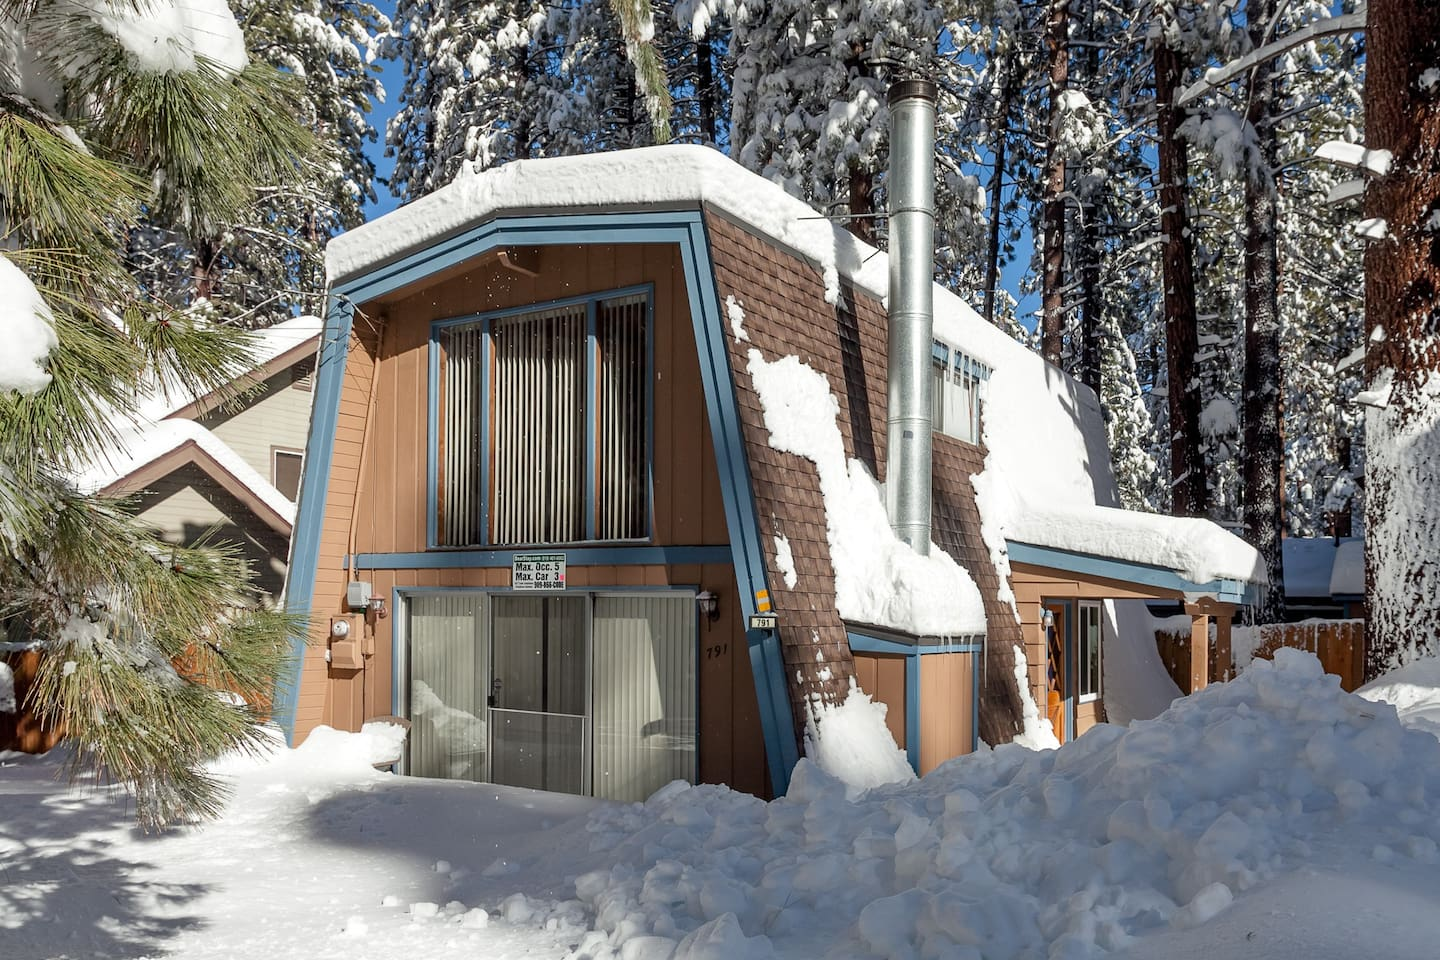 Private 2 bedroom Chalet. Steps to Snow summit. 5 minute drive to Village and Lake.